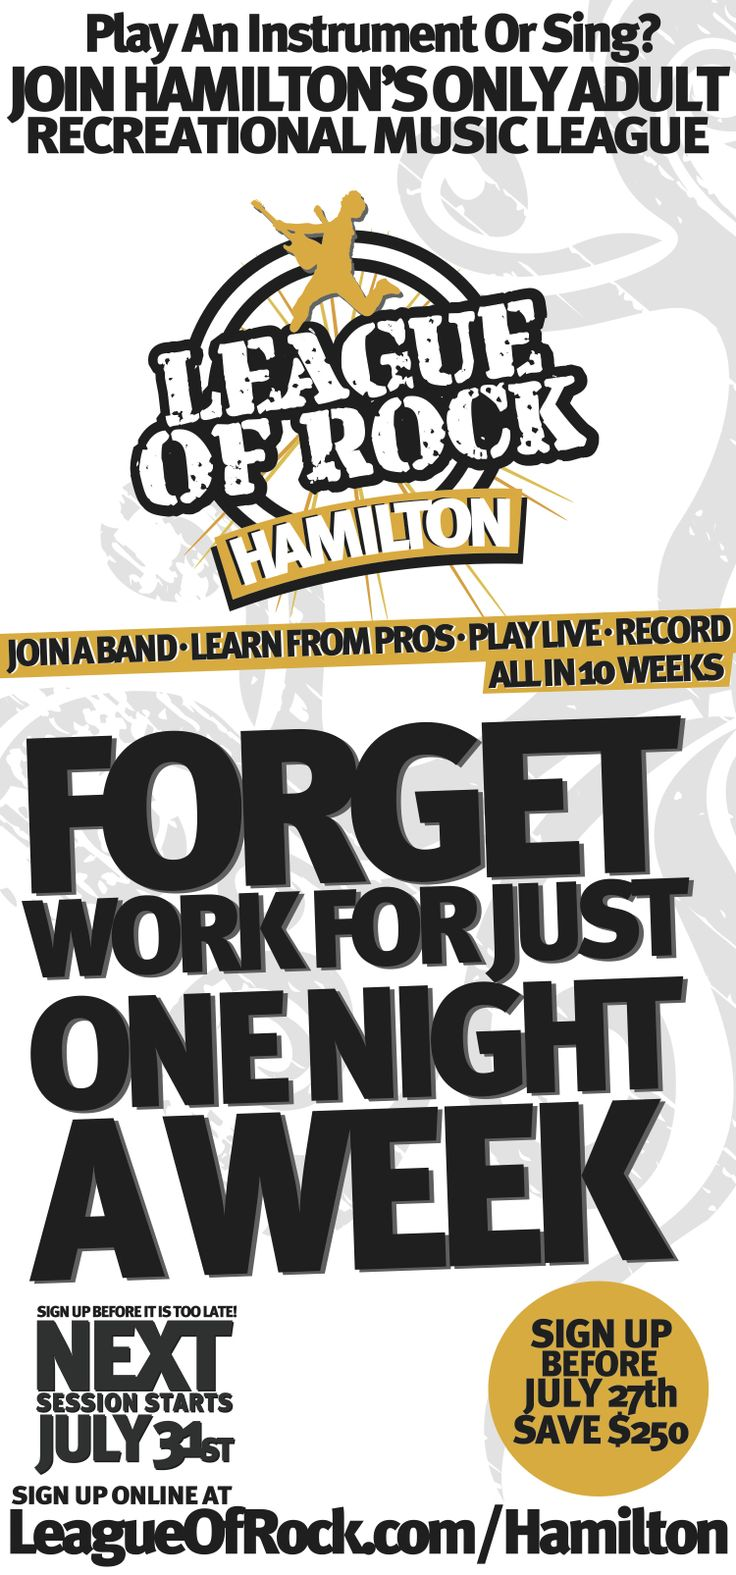 Forget Work For Just One Day!... And RAWK!